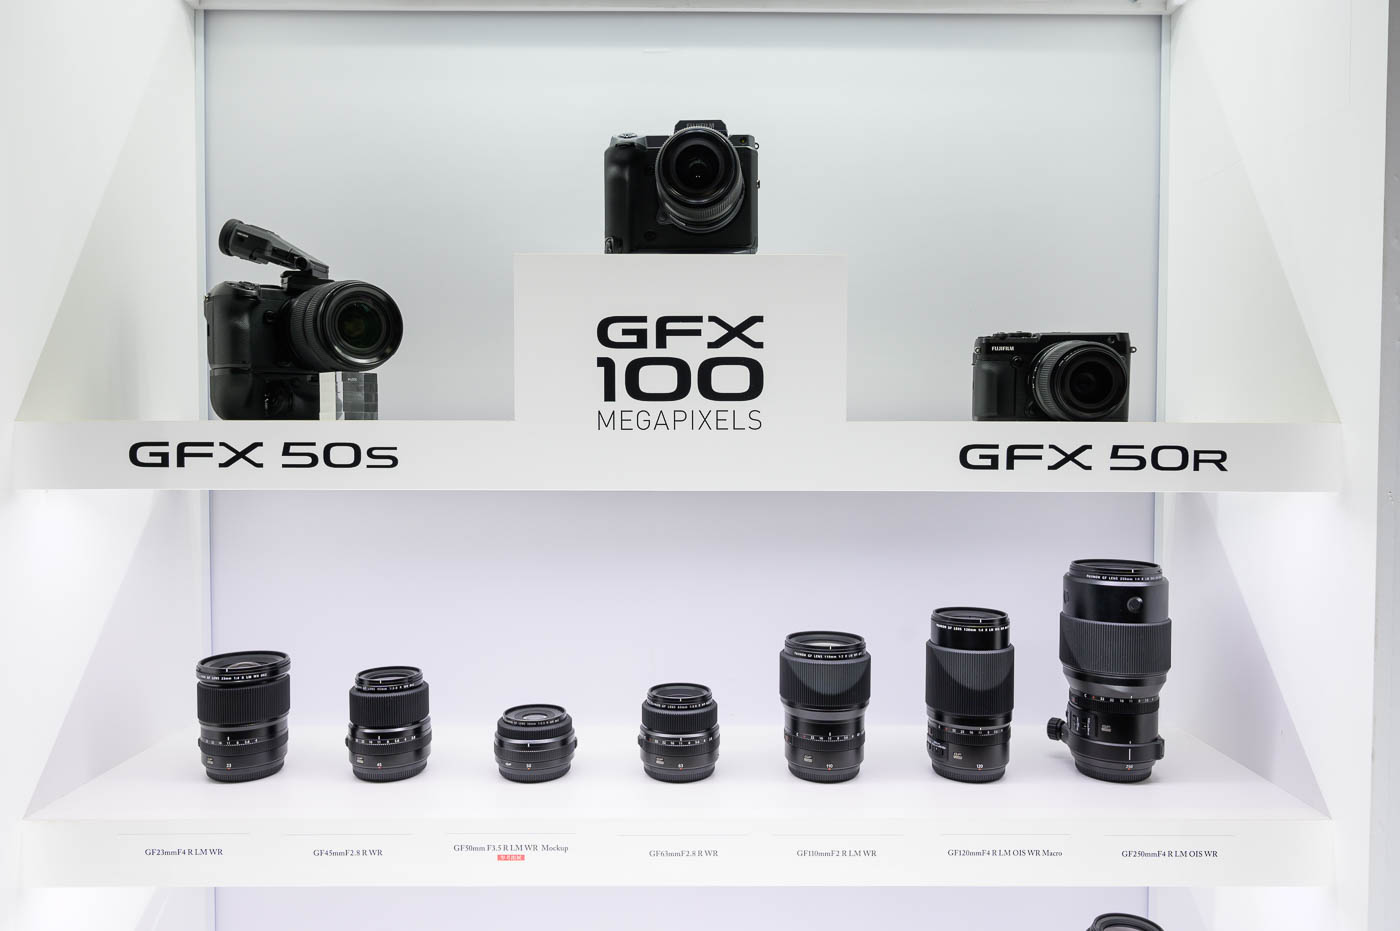 FUJIFILM AT CP + 2019 Interview: Fujifilm GFX100Mpx, GFX